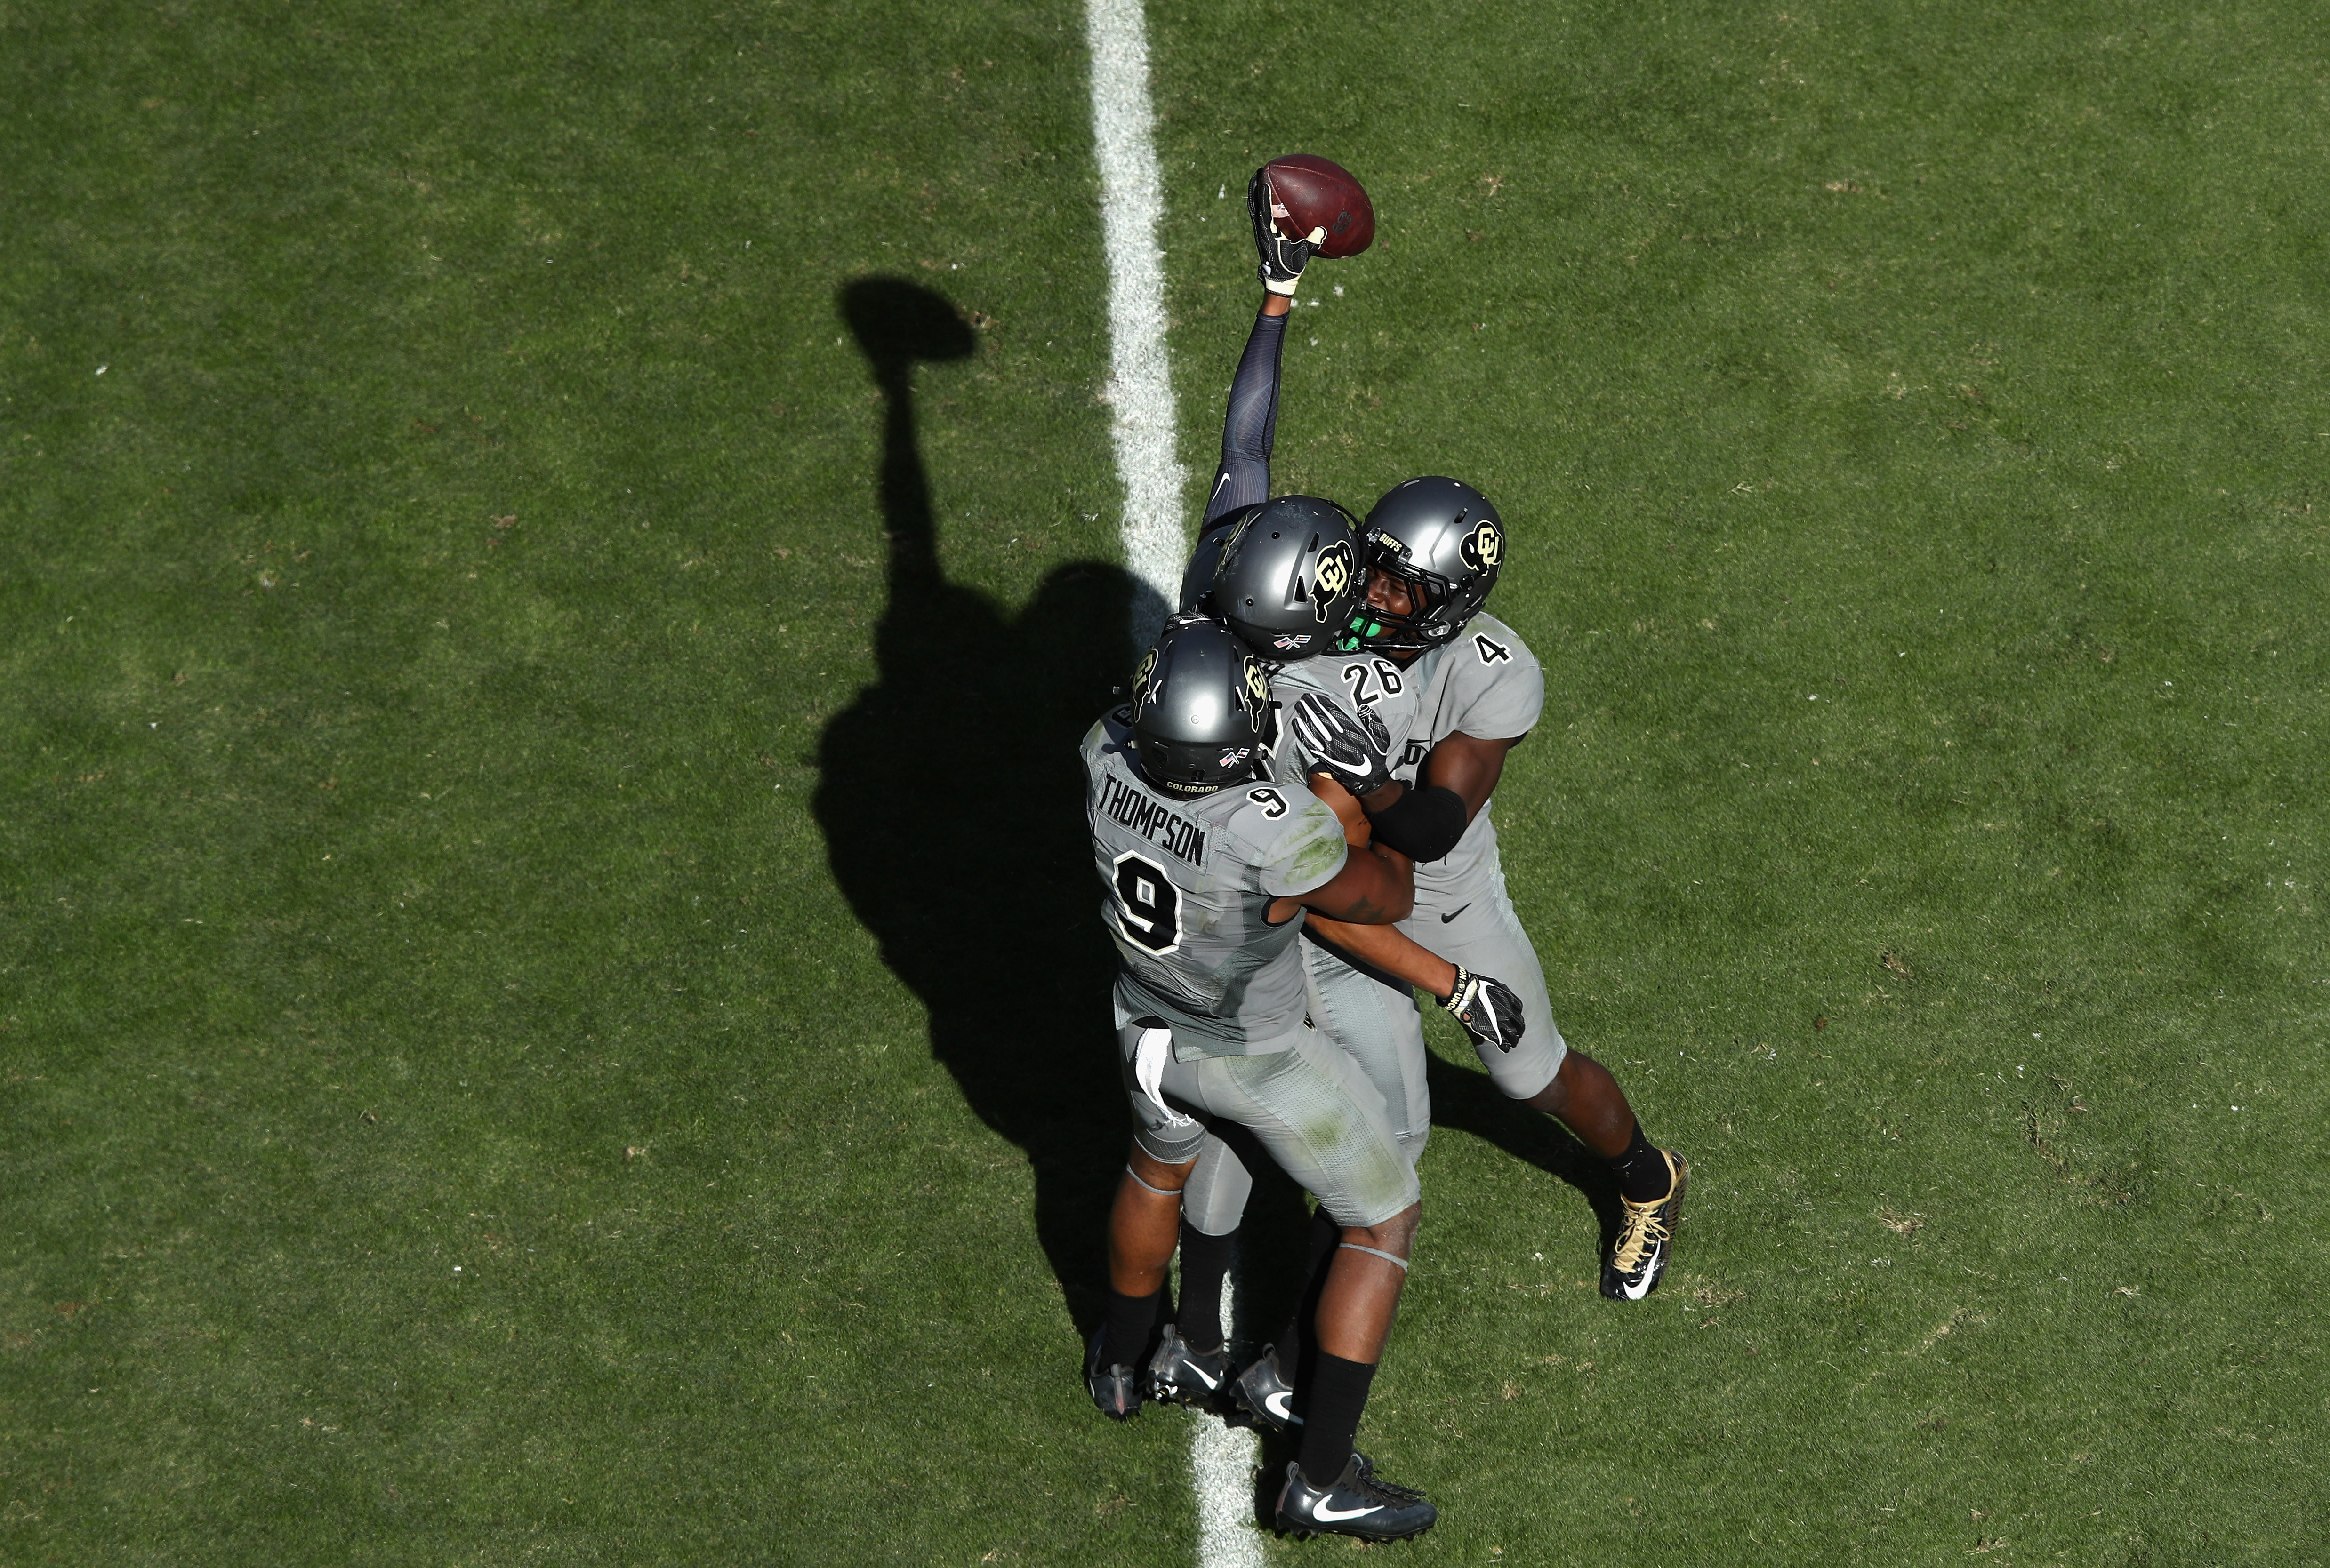 PALO ALTO, CA - OCTOBER 22:  Isaiah Oliver #26 of the Colorado Buffaloes is congratulated by Tedric Thompson #9 and Chidobe Awuzie #4 after he intercepted a pass late in the fourth quarter to secure the Buffaloes victory over the Stanford Cardinal at Stanford Stadium on October 22, 2016 in Palo Alto, California.  (Photo by Ezra Shaw/Getty Images)